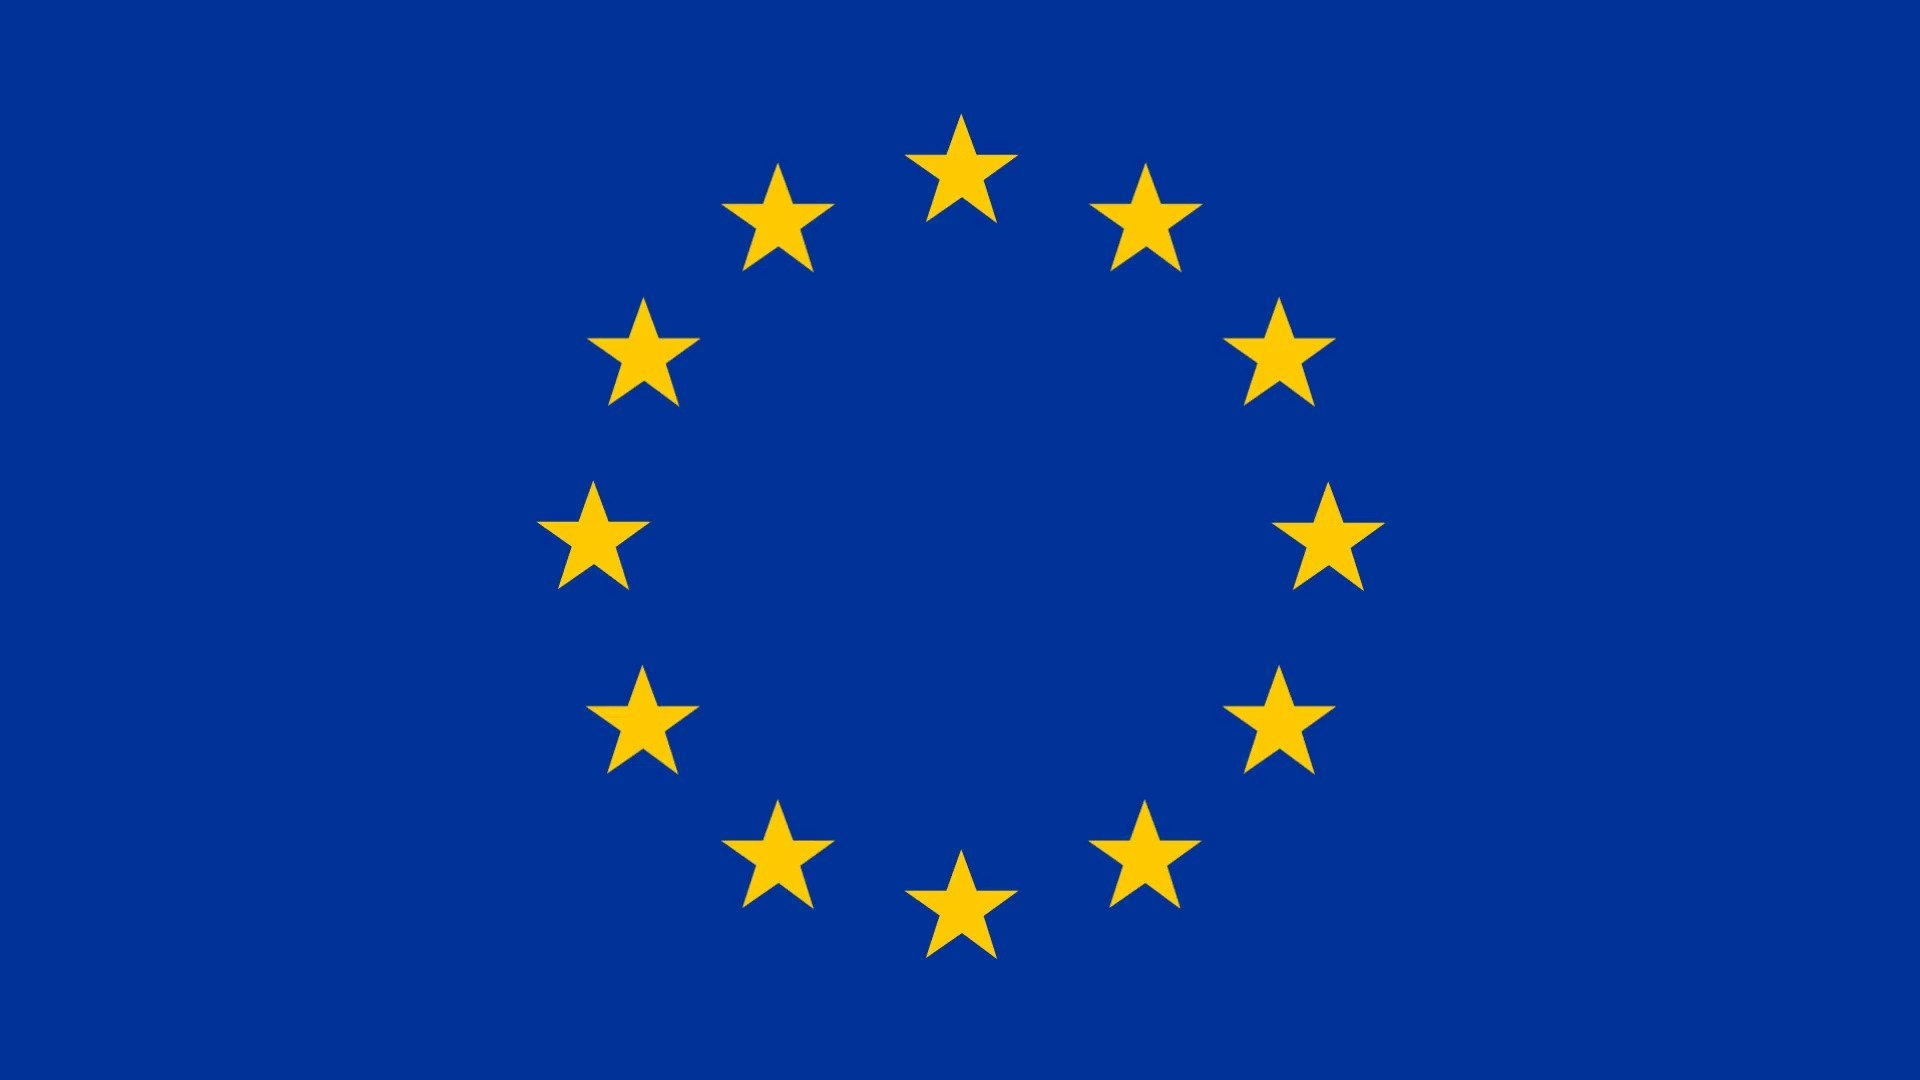 European Union Flag